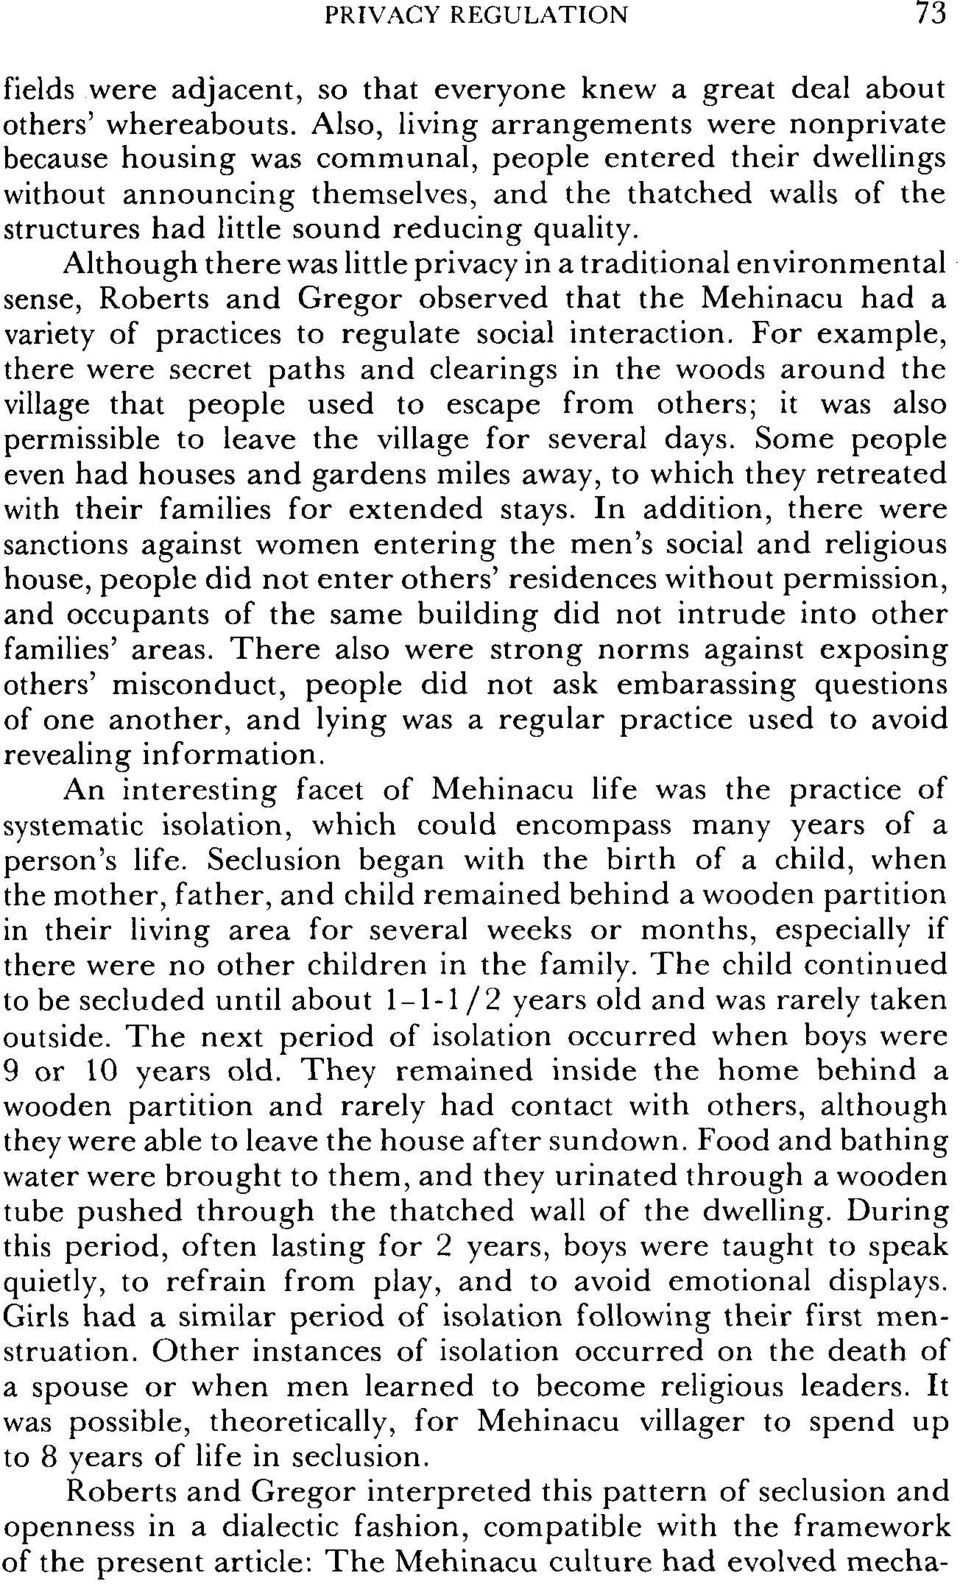 reducing quality. Although there was little privacy in a traditional environmental sense, Roberts and Gregor observed that the Mehinacu had a variety of practices to regulate social interaction.